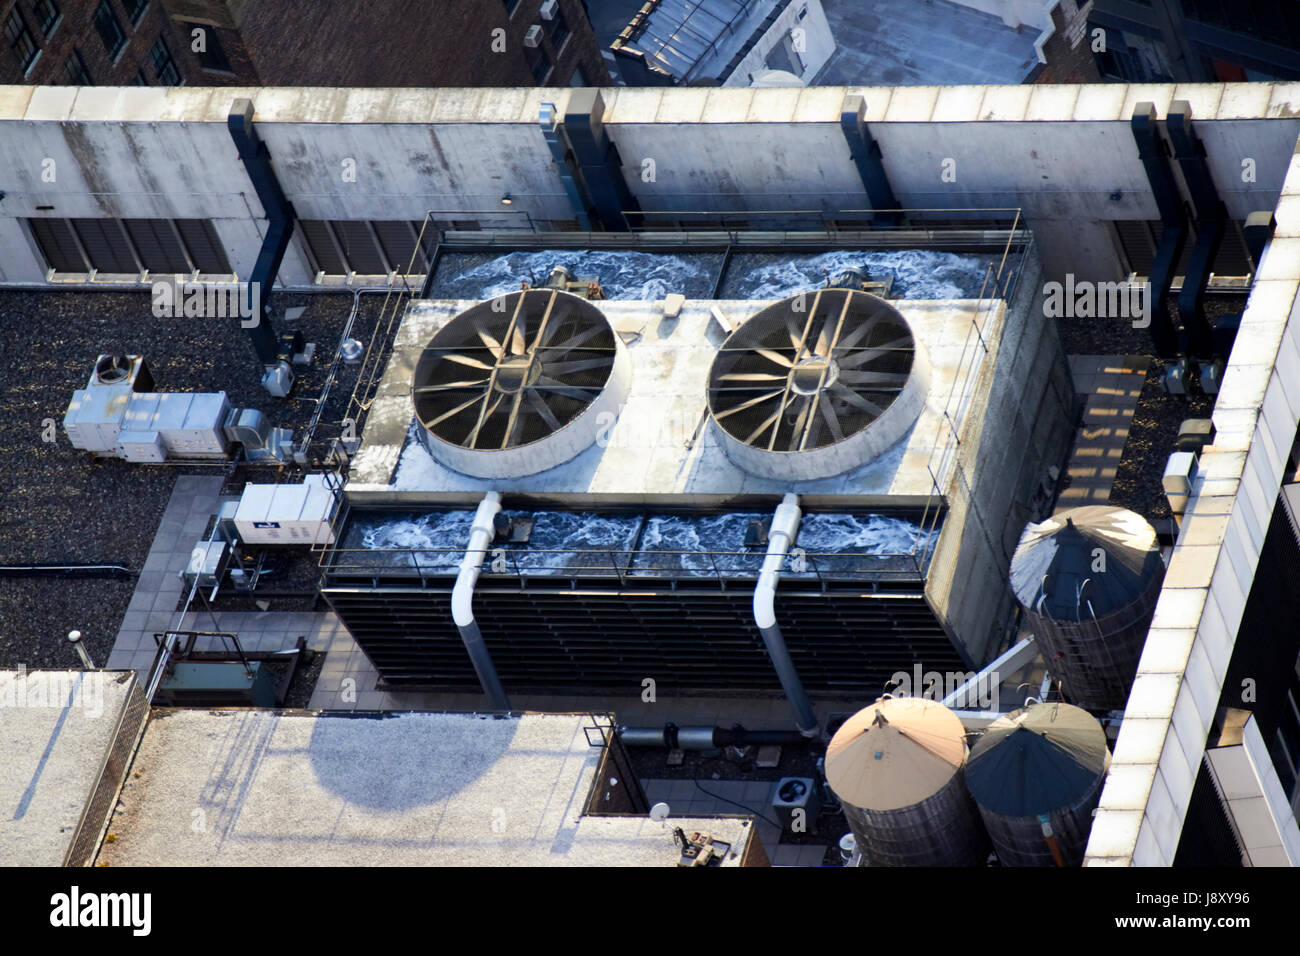 industrial large air conditioning system and wooden water towers on top of buildings in midtown manhattan New York - Stock Image